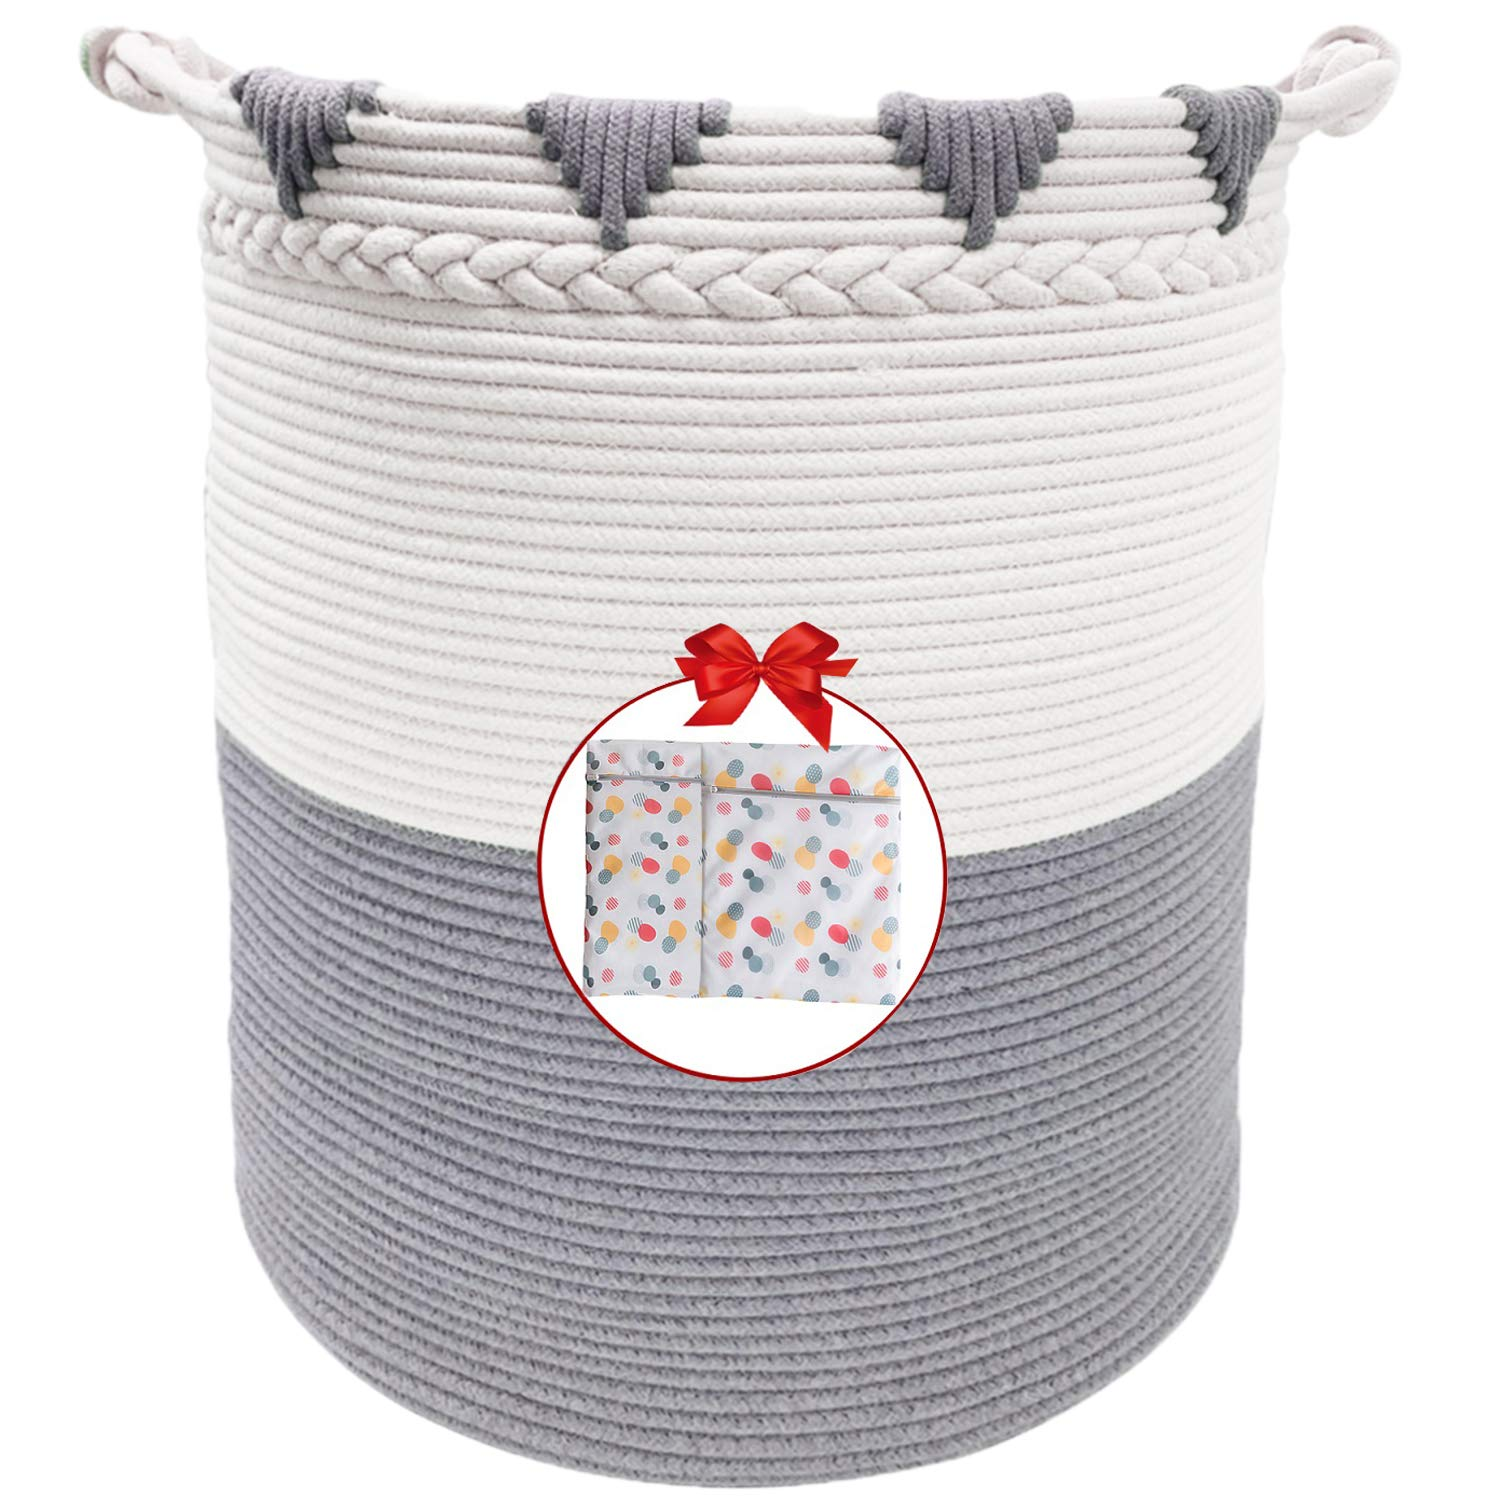 "TerriTrophy XXXL Large Laundry Hamper with Handles Tall Basket Cotton Rope Basket 22""x16""x 16"" Woven Laundry Basket Blanket Storage Baskets for Towel, Throws, Toys, Diaper, Hamper"